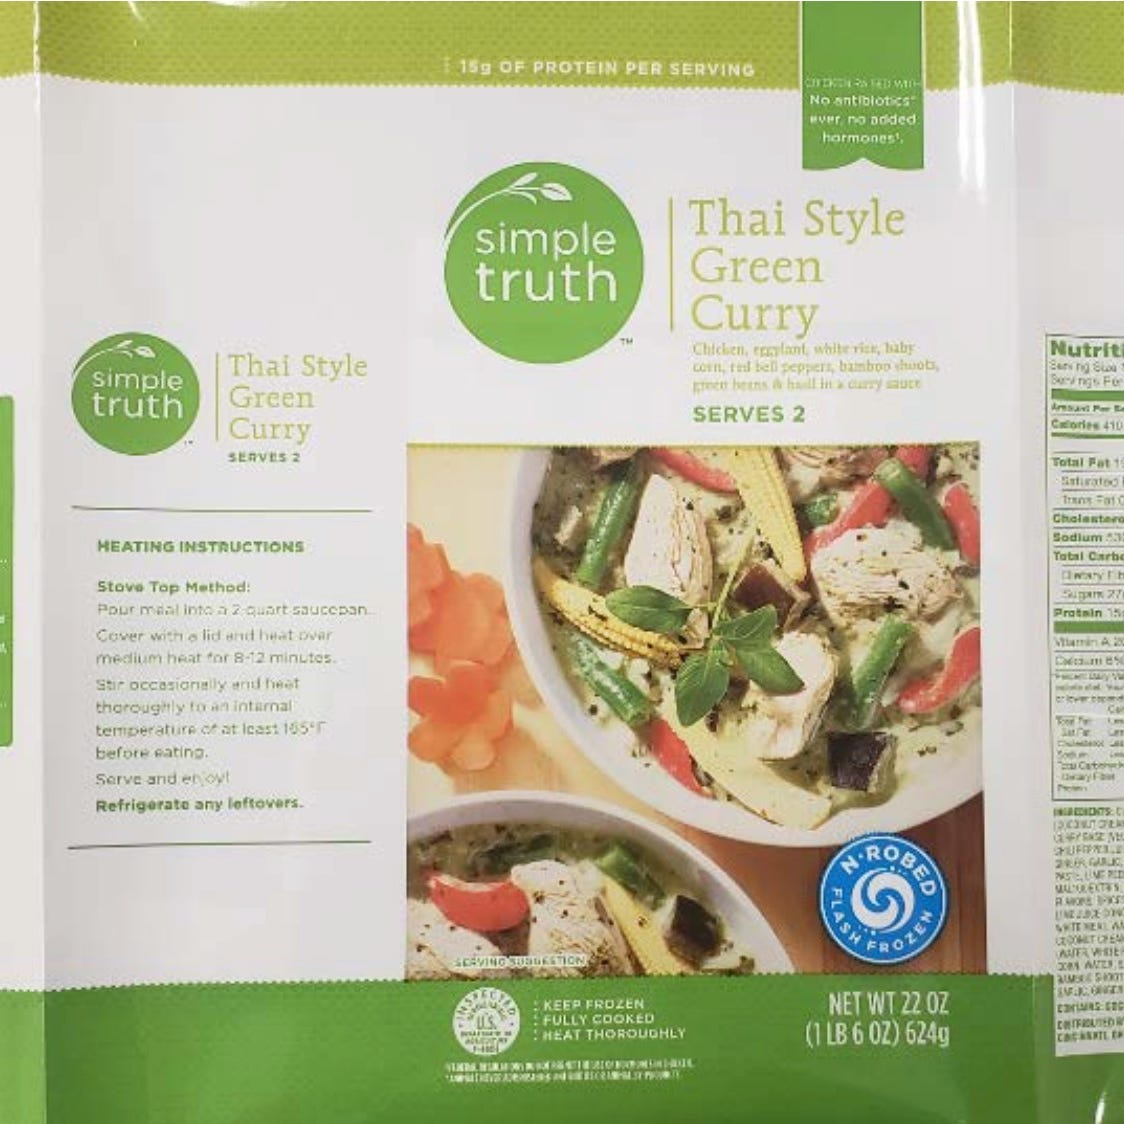 Envolve Foods of Corona, California, has recalled about 292,764 pounds of ready-to-eat chicken and beef products including 22-ounce bags of Simple Truth Thai Style Green Curry over concerns of possible listeria and salmonella contamination. The packages have sell by dates of 3/13/19 through 1/24/20.